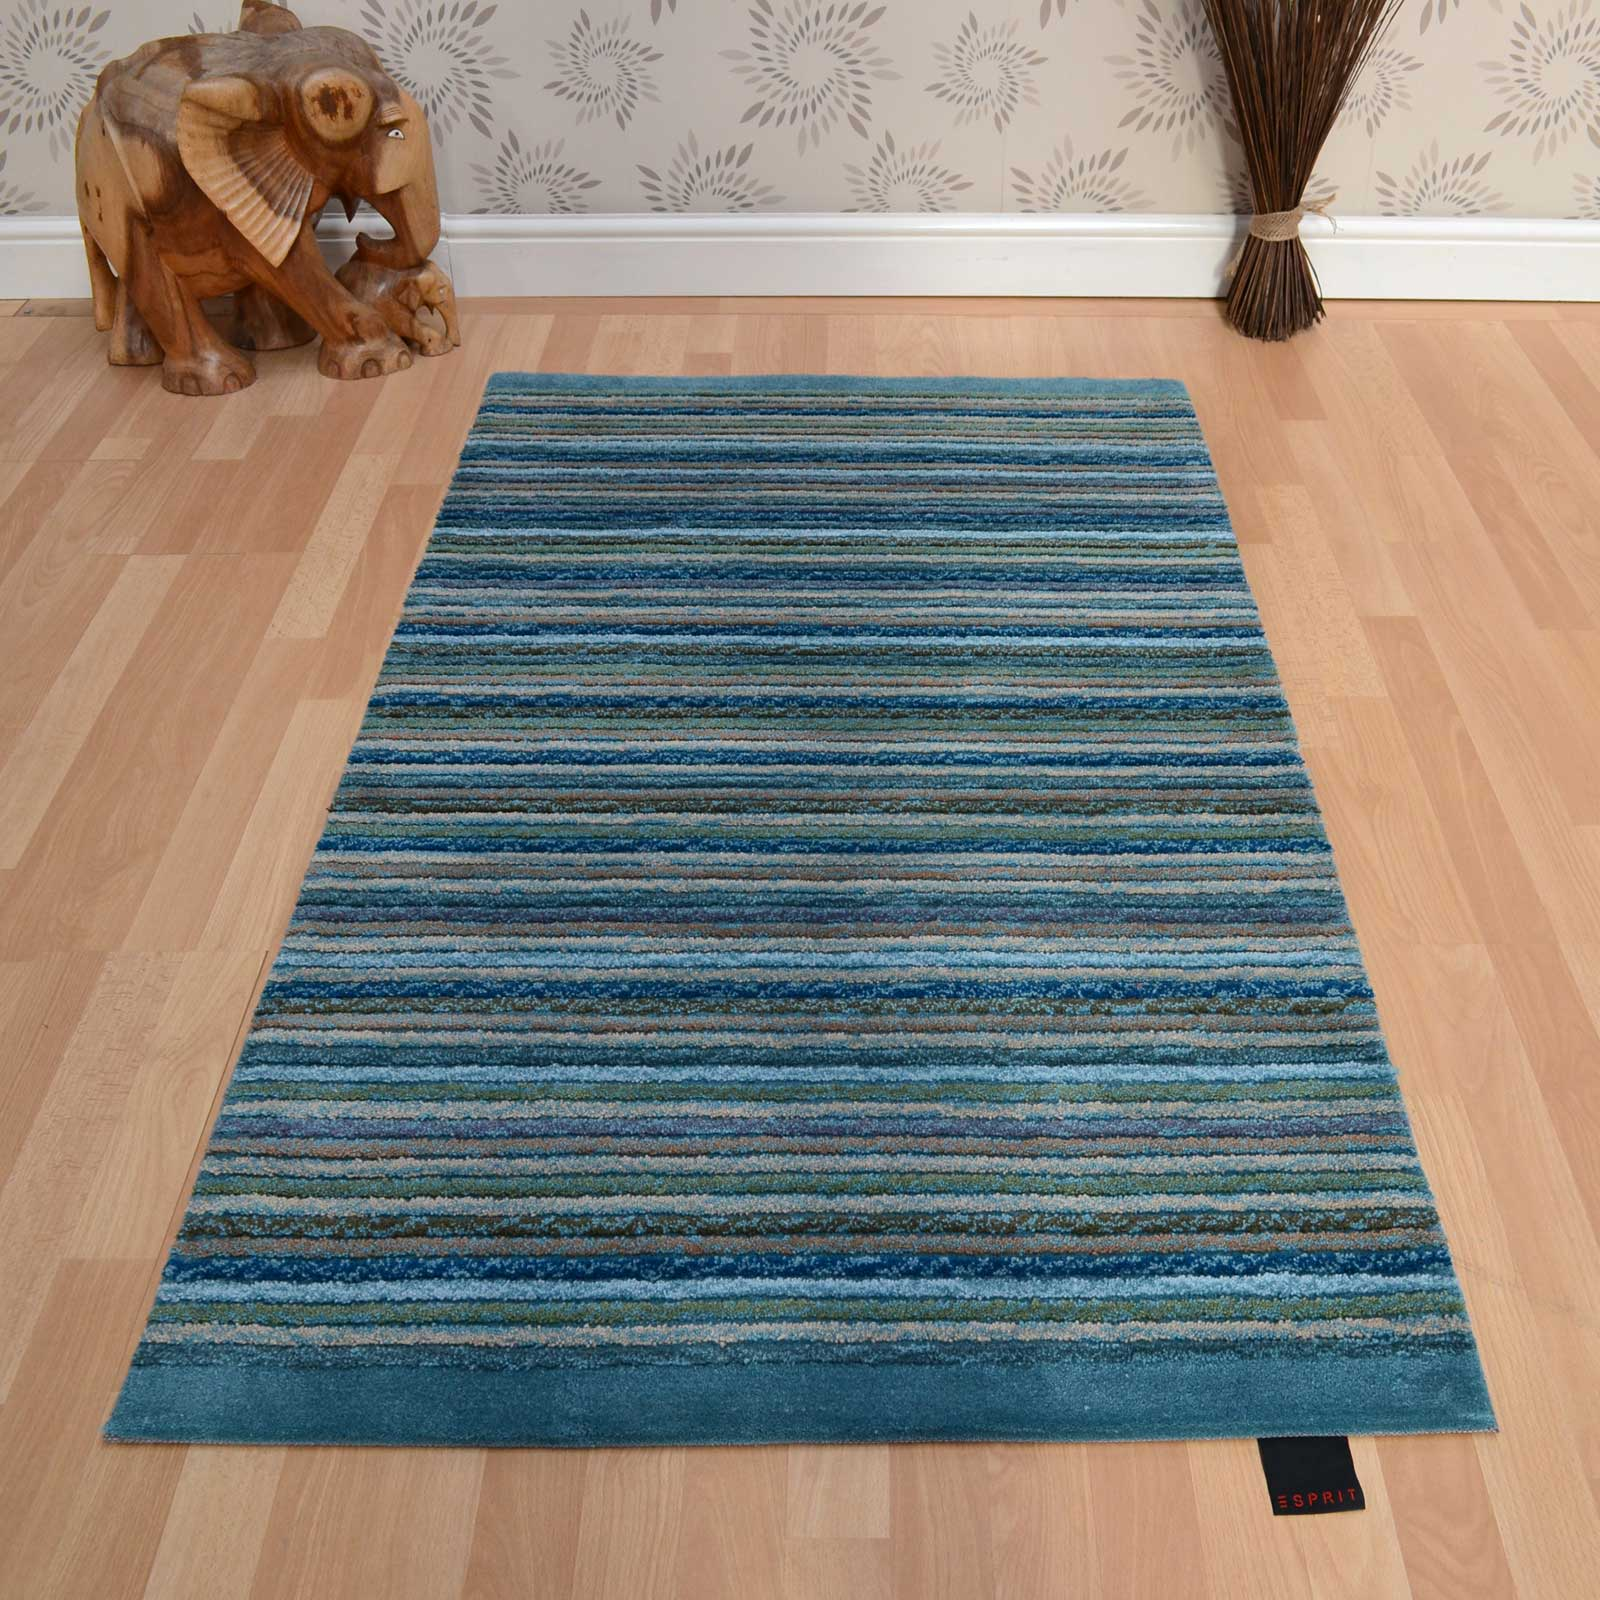 Esprit Samba Stripes Rugs 3623 06 Blue